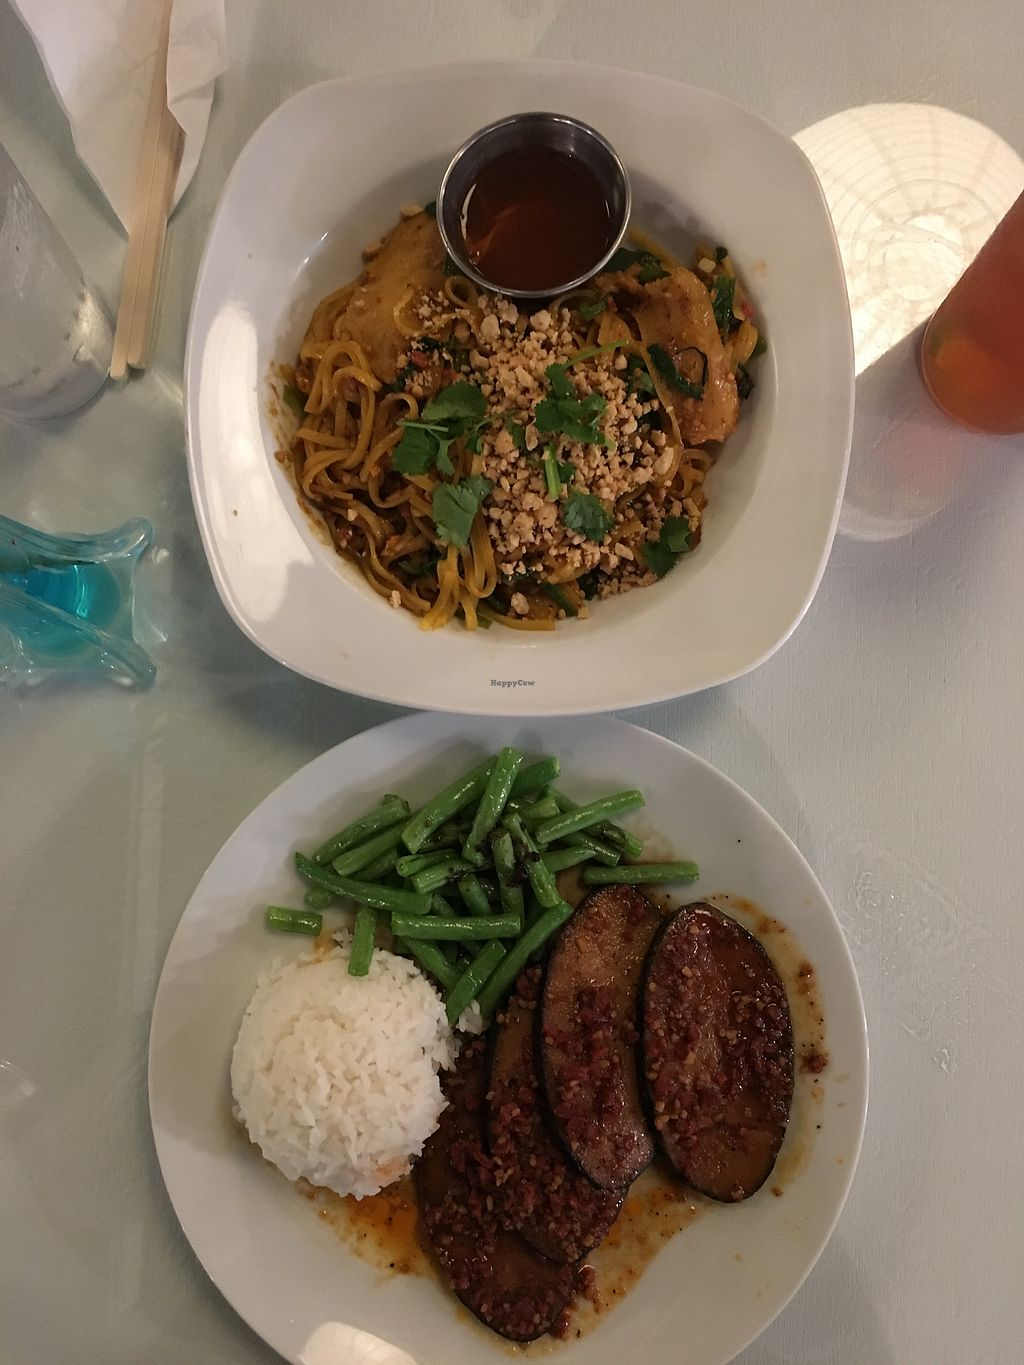 """Photo of Boba House  by <a href=""""/members/profile/Dreghead"""">Dreghead</a> <br/>Blacked tuna <br/> August 6, 2017  - <a href='/contact/abuse/image/3396/289655'>Report</a>"""